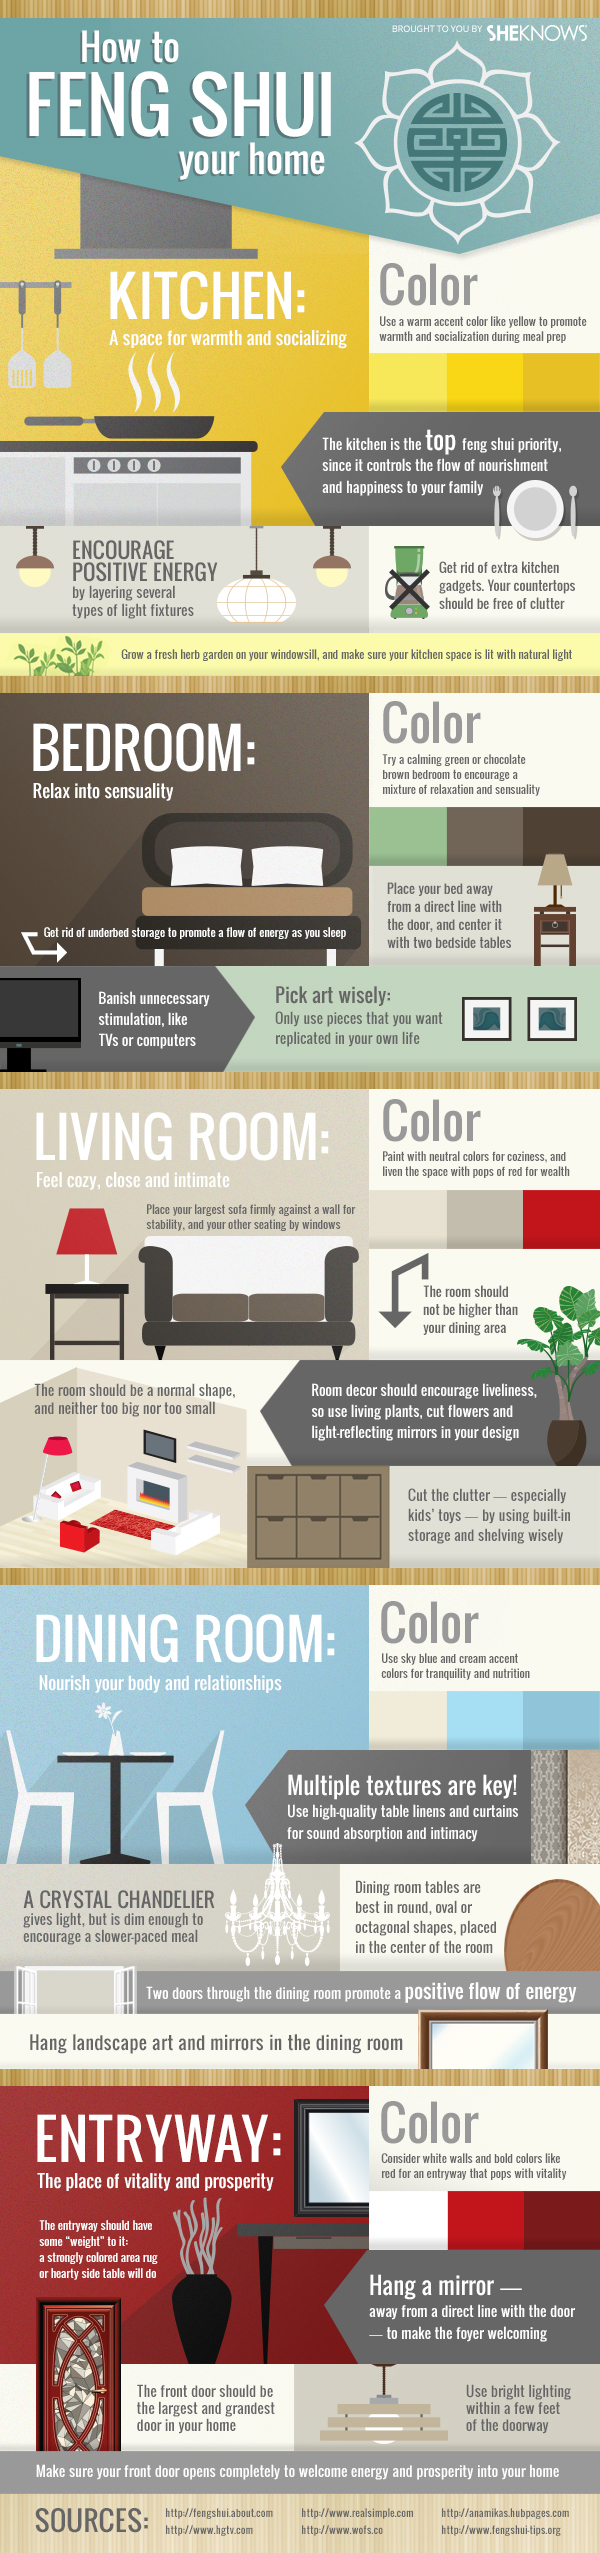 How To Feng Shui Your Home Infographic